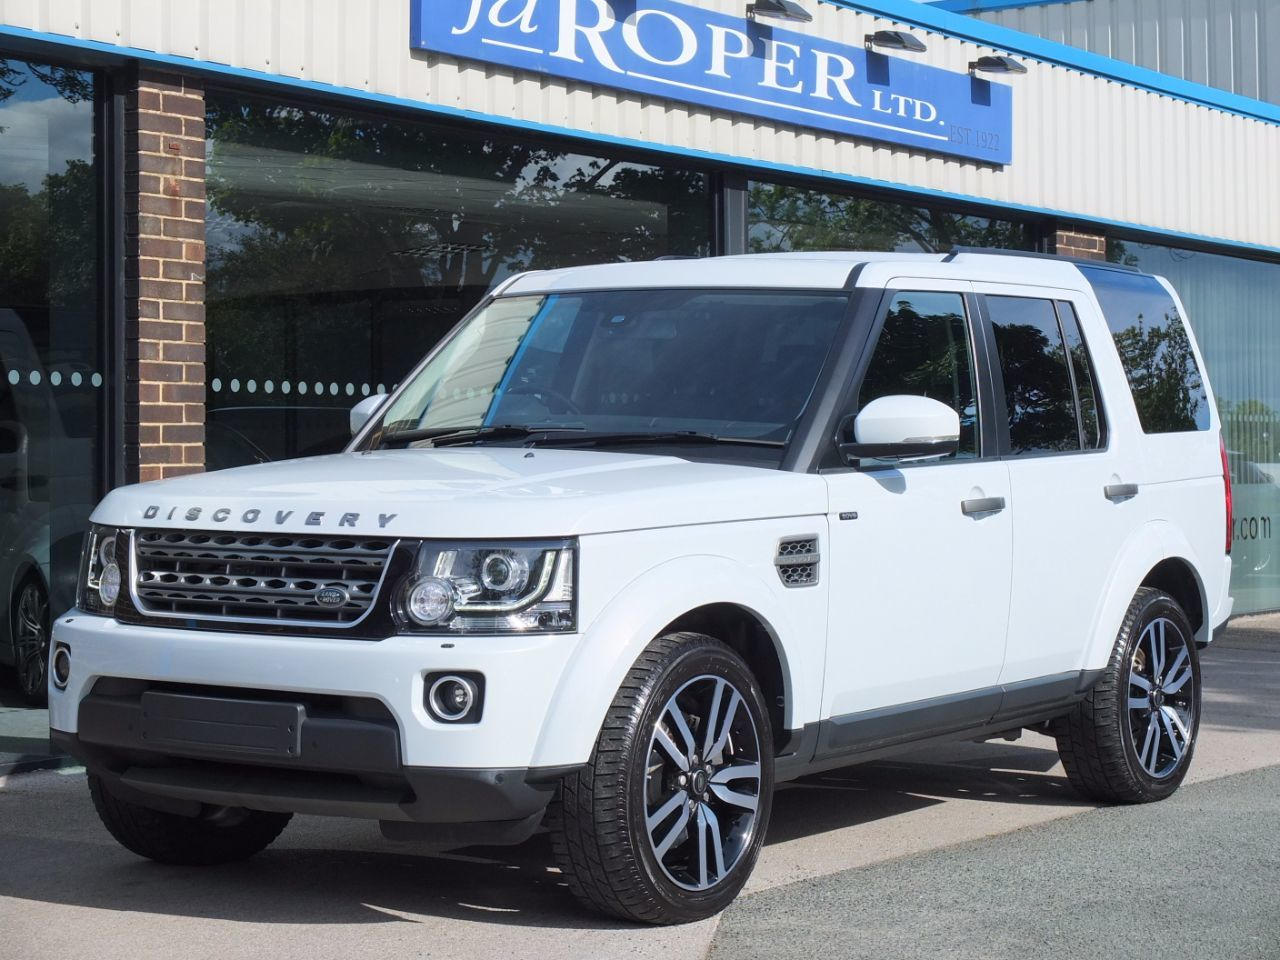 Land Rover Discovery 3.0 SDV6 SE Tech Auto Estate Diesel Yulong White MetallicLand Rover Discovery 3.0 SDV6 SE Tech Auto Estate Diesel Yulong White Metallic at fa Roper Ltd Bradford